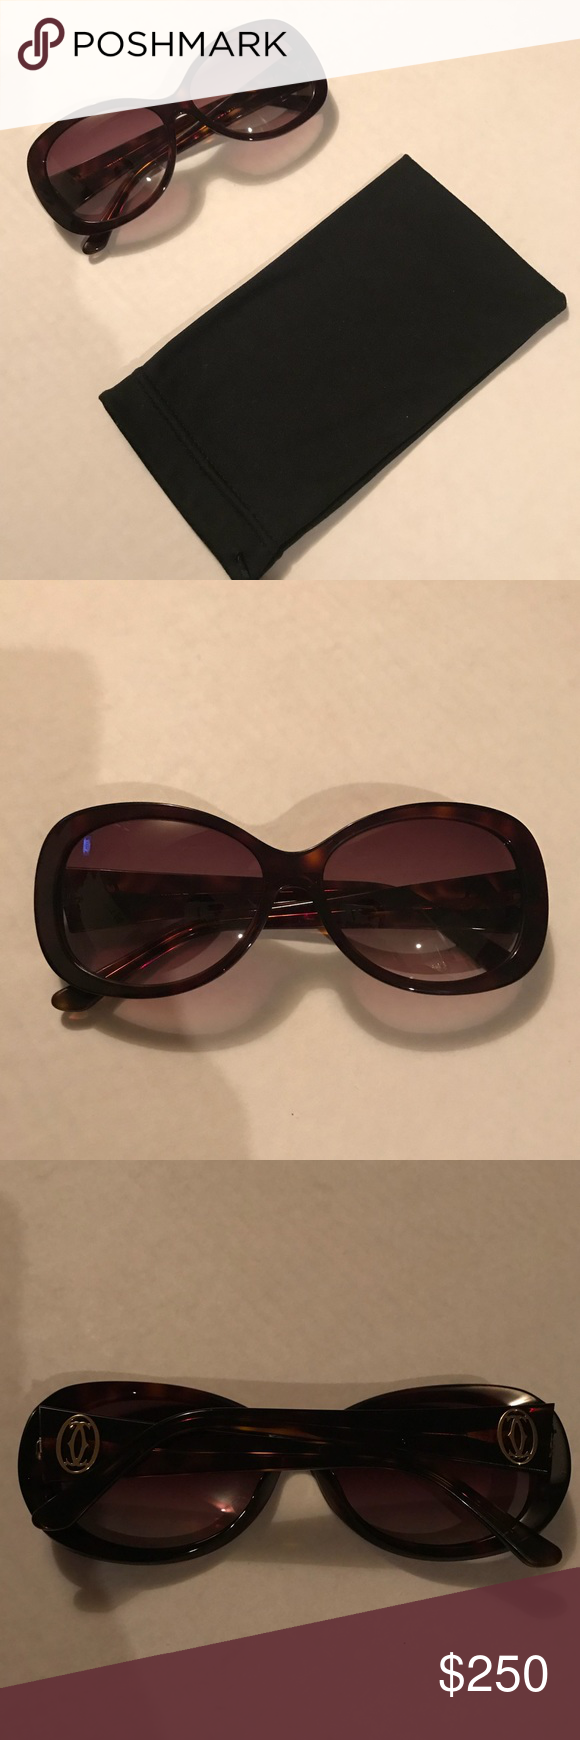 38496ef6fa40 Authentic Cartier Sunglasses Cartier Sunglasses Paris 140 Authentic  Handmade in France Retail for  400 Used Comes in a Dolce   Gabanna Bag  (Since I lost the ...